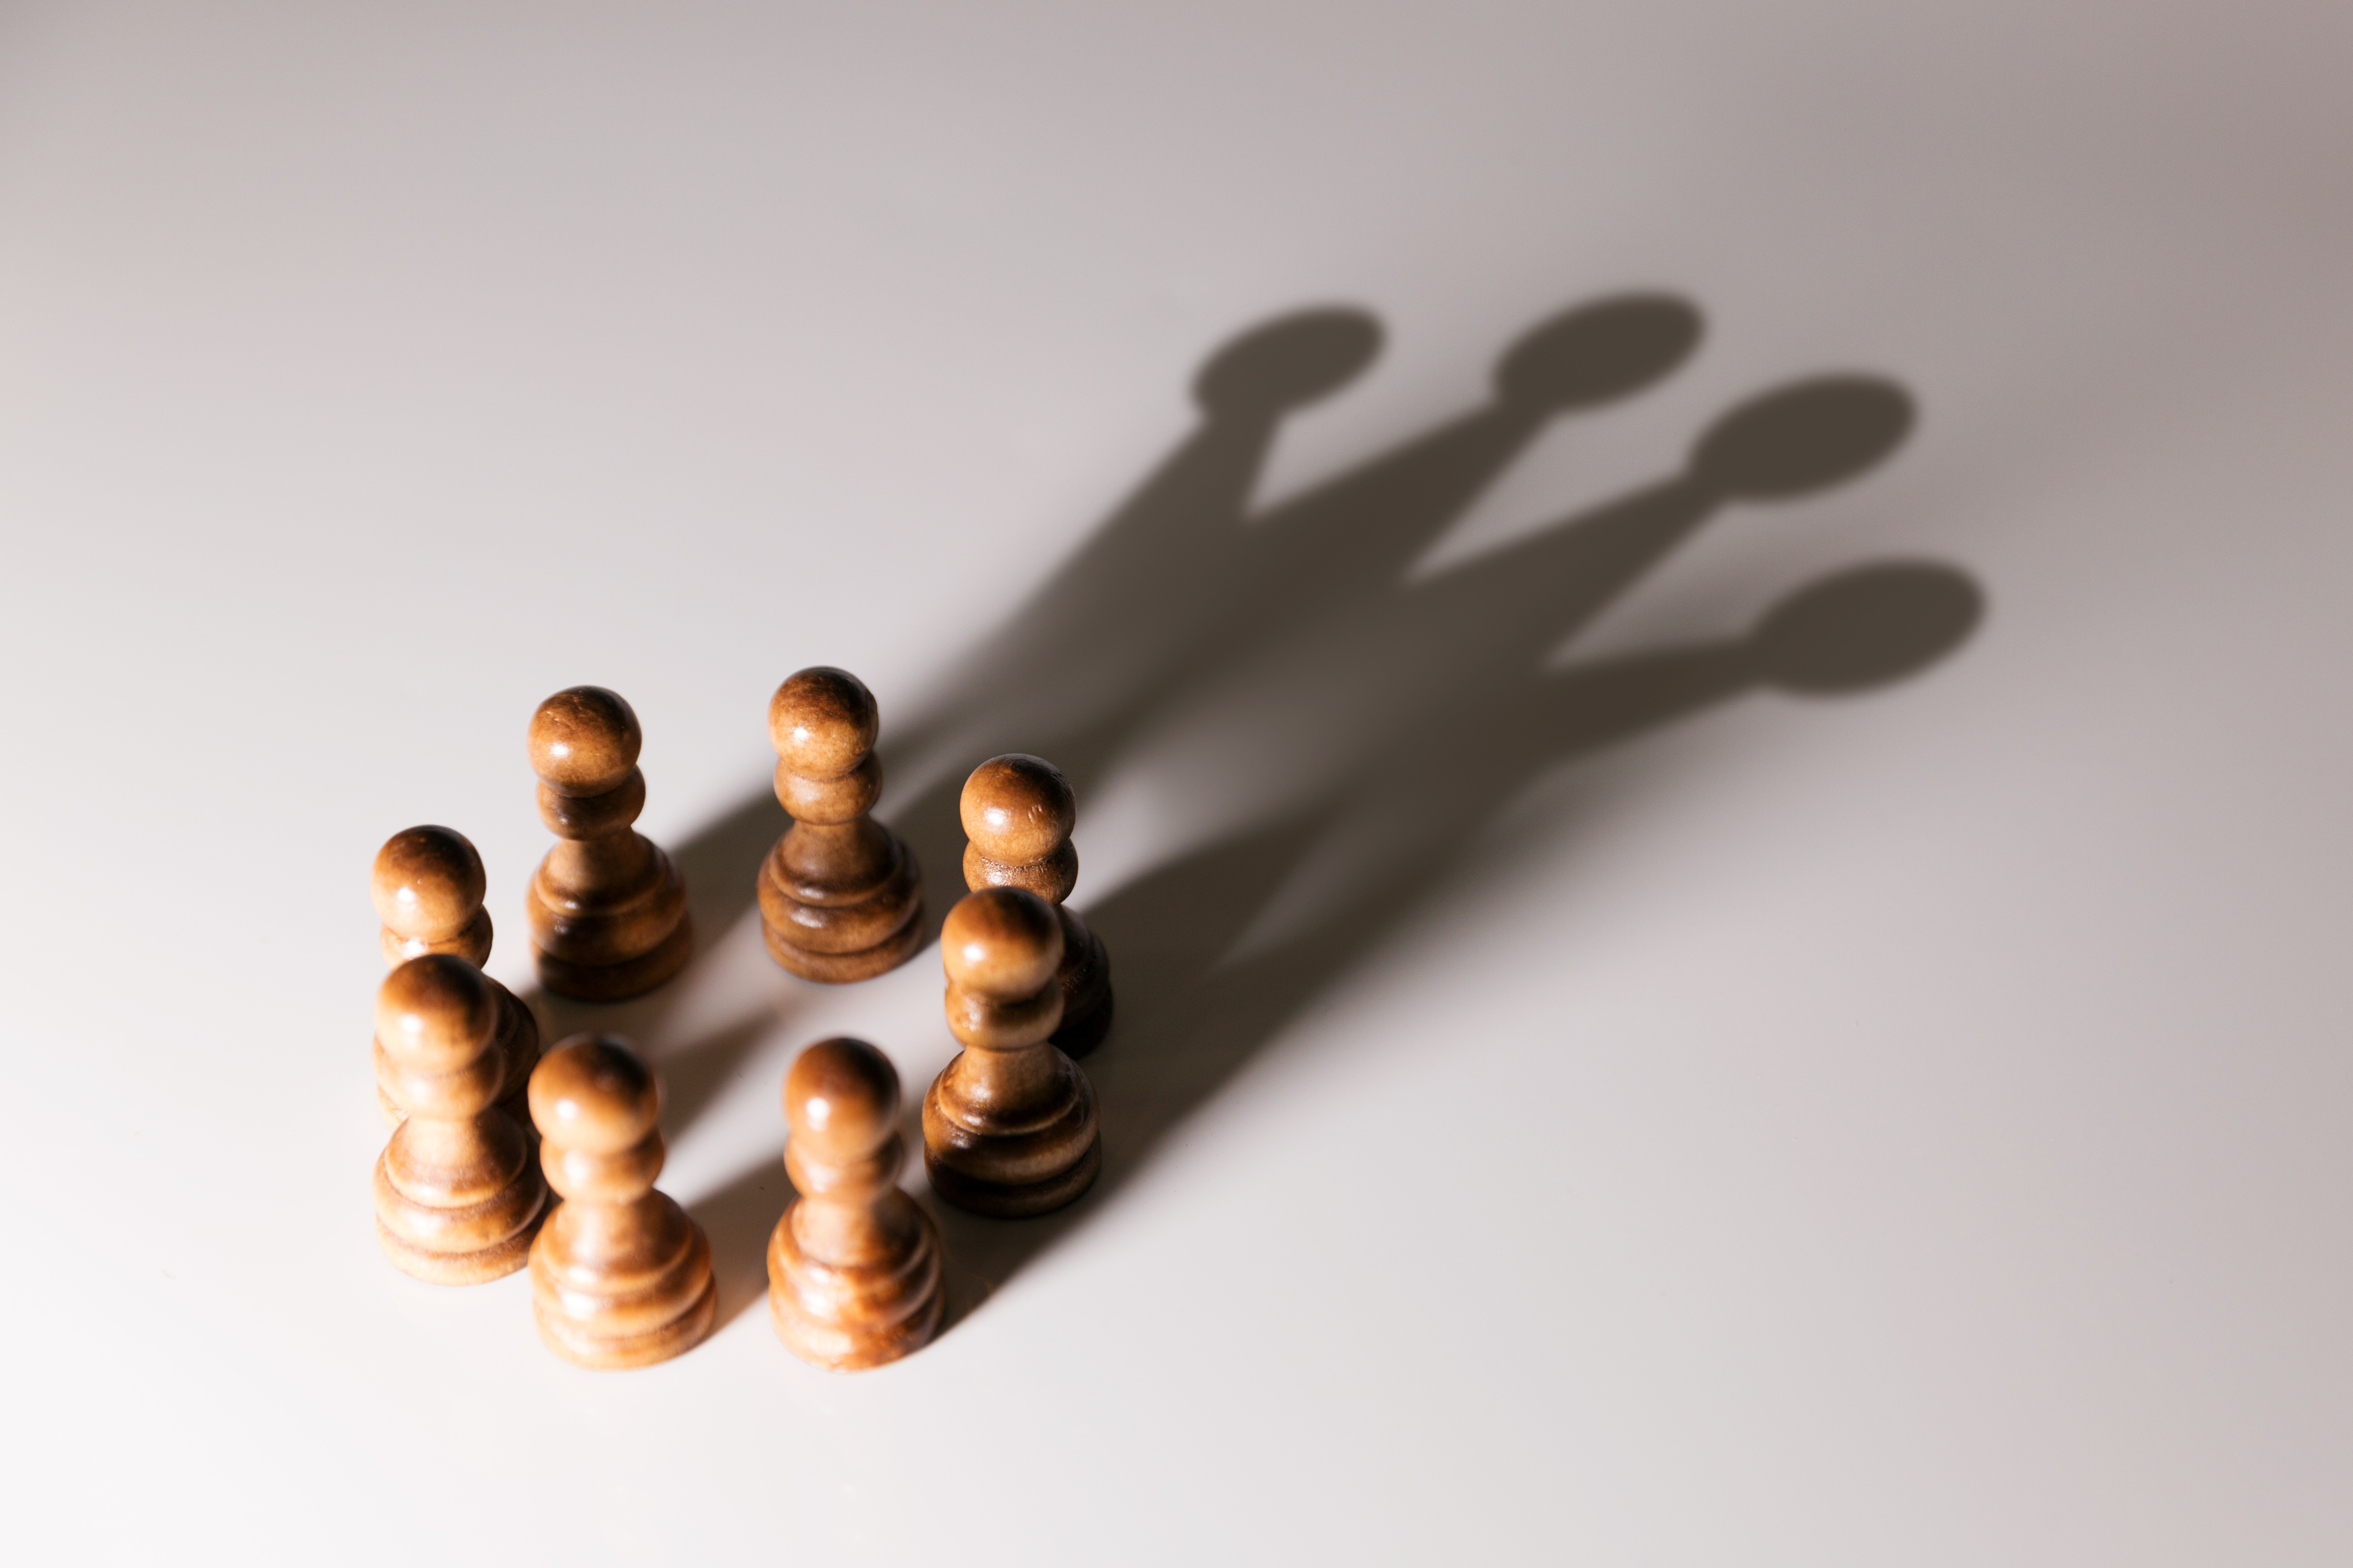 Manage and Reduce the Risk of Leadership Derailment in Your Organisation